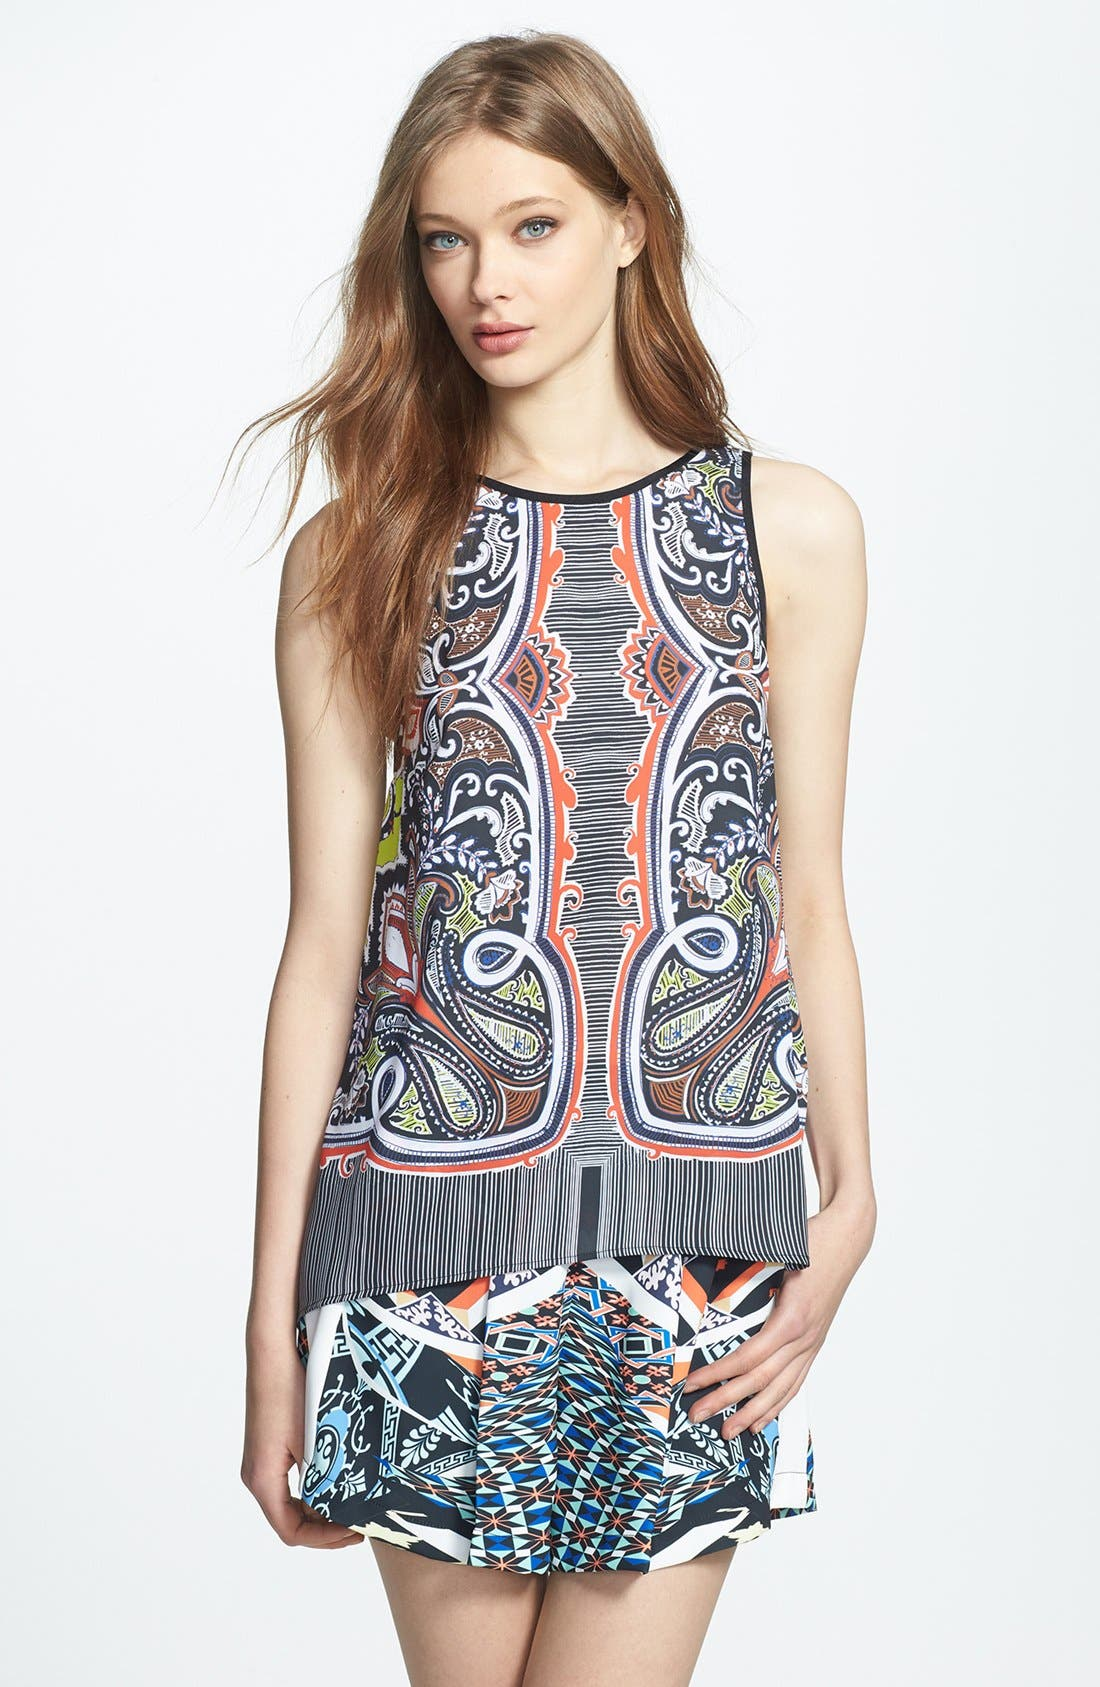 Main Image - Clover Canyon 'Havana' Print Top